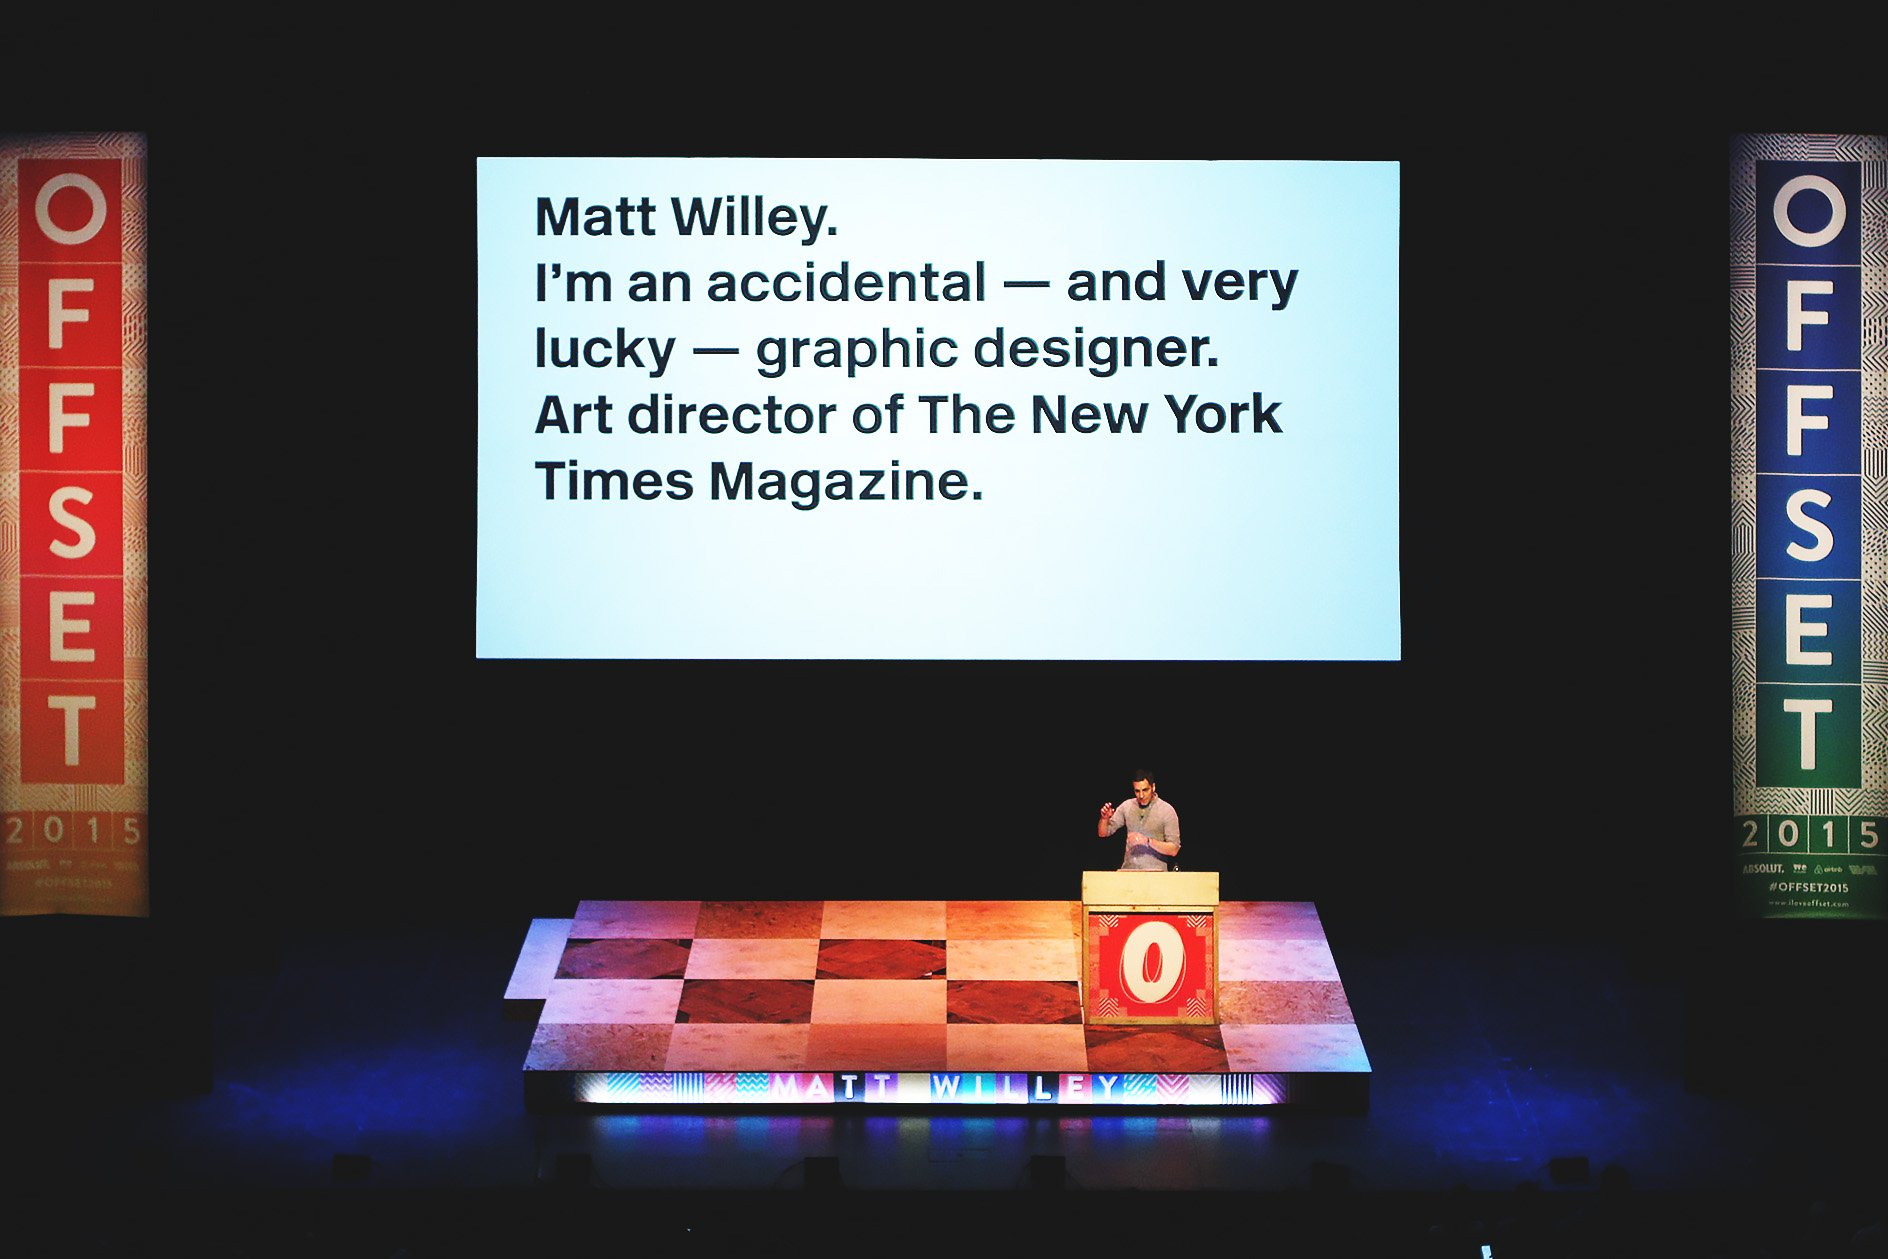 Matt Willey at OFFSET 2015 – Introduction